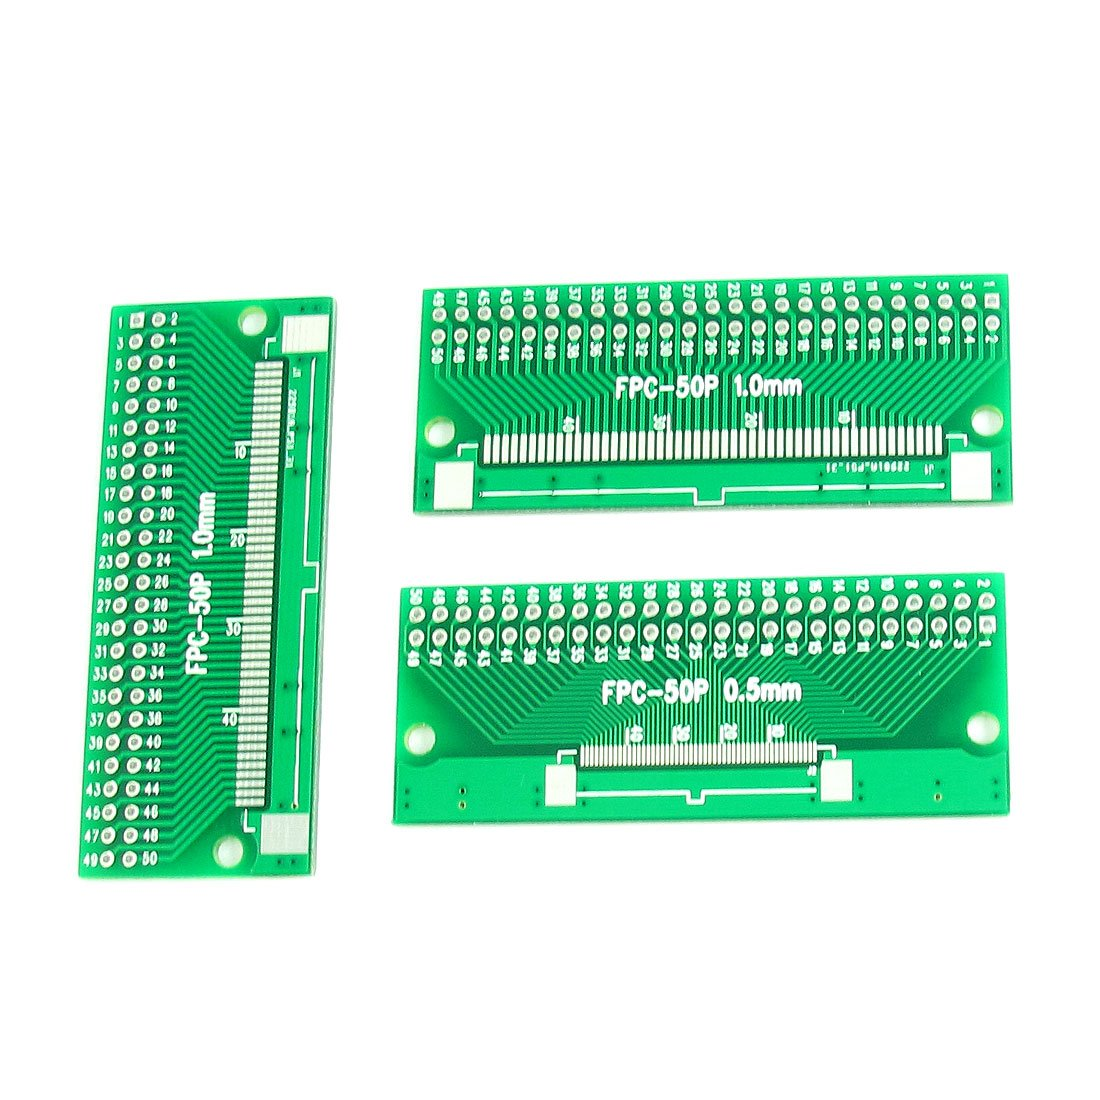 "Uxcell a14060600ux0536 3 Piece 65 mm x 26 mm 2 Sides 0.5 mm 1 mm to 2.54 mm Pitch DIP50 PCB Adapter, 1.02"" Width, 2.56"" Length"